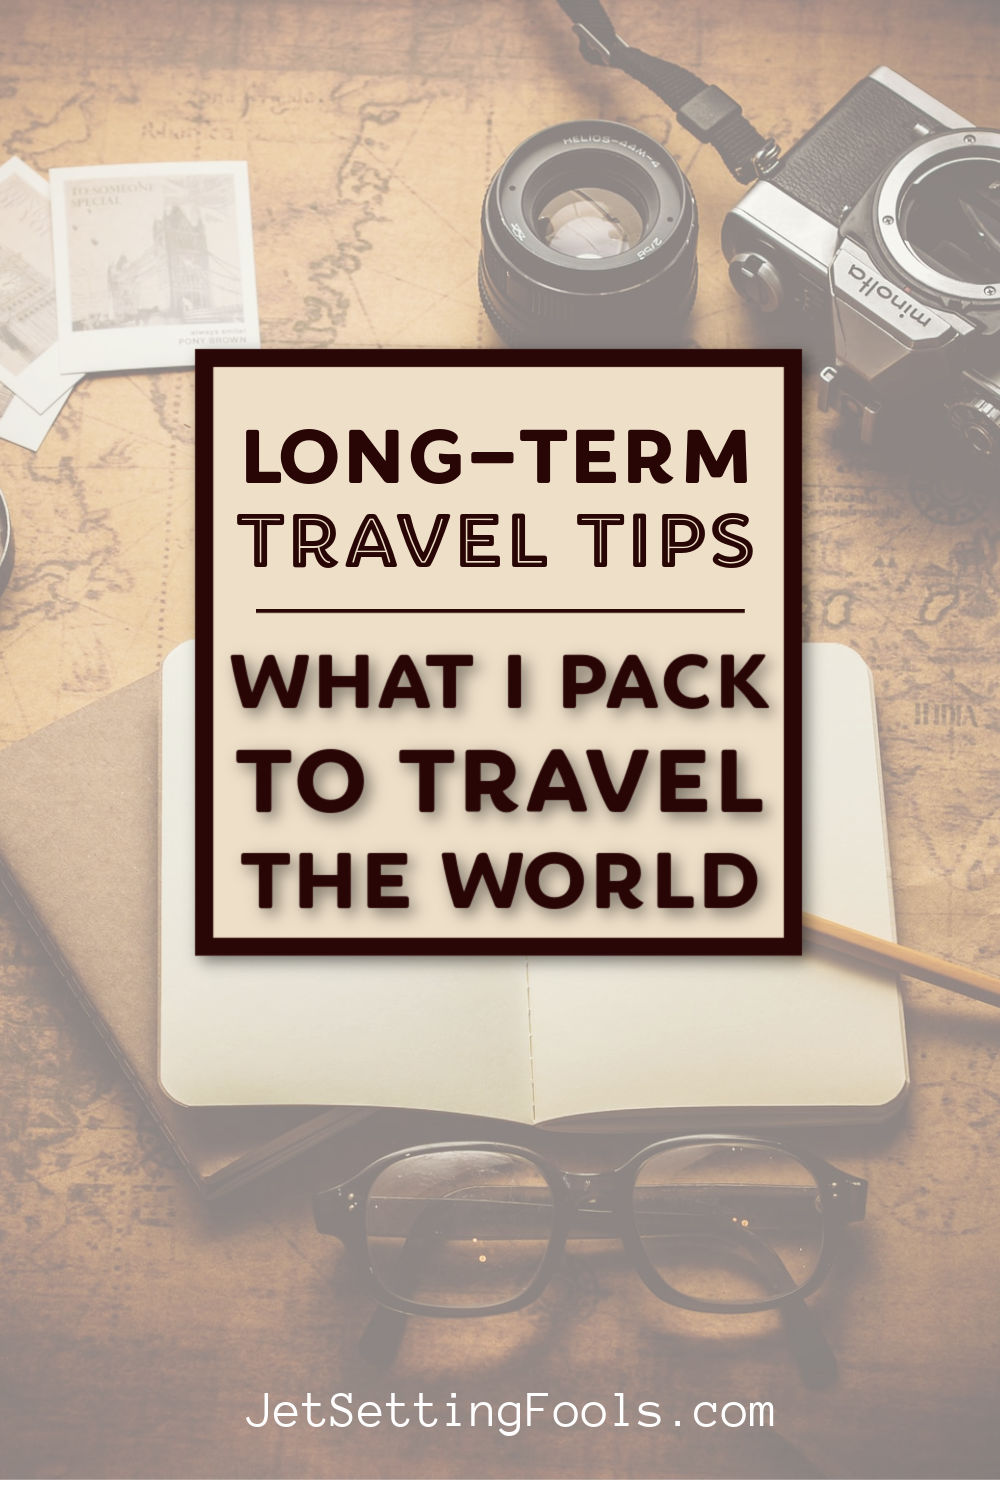 Long Term Travel Tips What I Pack To Travel the World by JetSettingFools.com